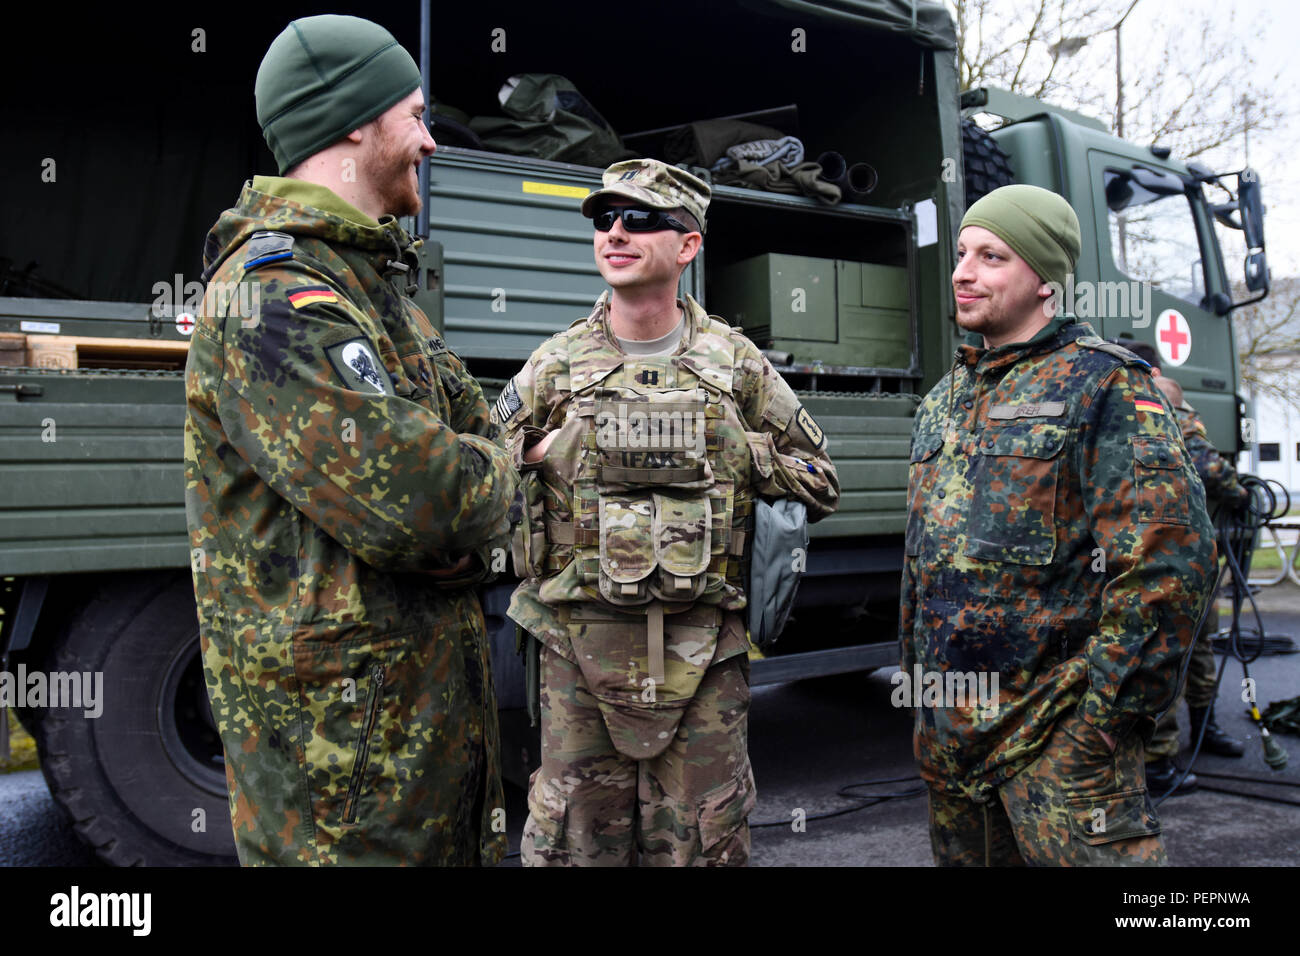 Capt Jonathan Haines 557th Area Medical Support Company Commander 421st Multifunctional Medical Battalion Meets With Bundeswehr Medical Personnel During 30th Medical Brigade S Medshock On Mccully Barracks Germany On Jan 26 2016 Prior